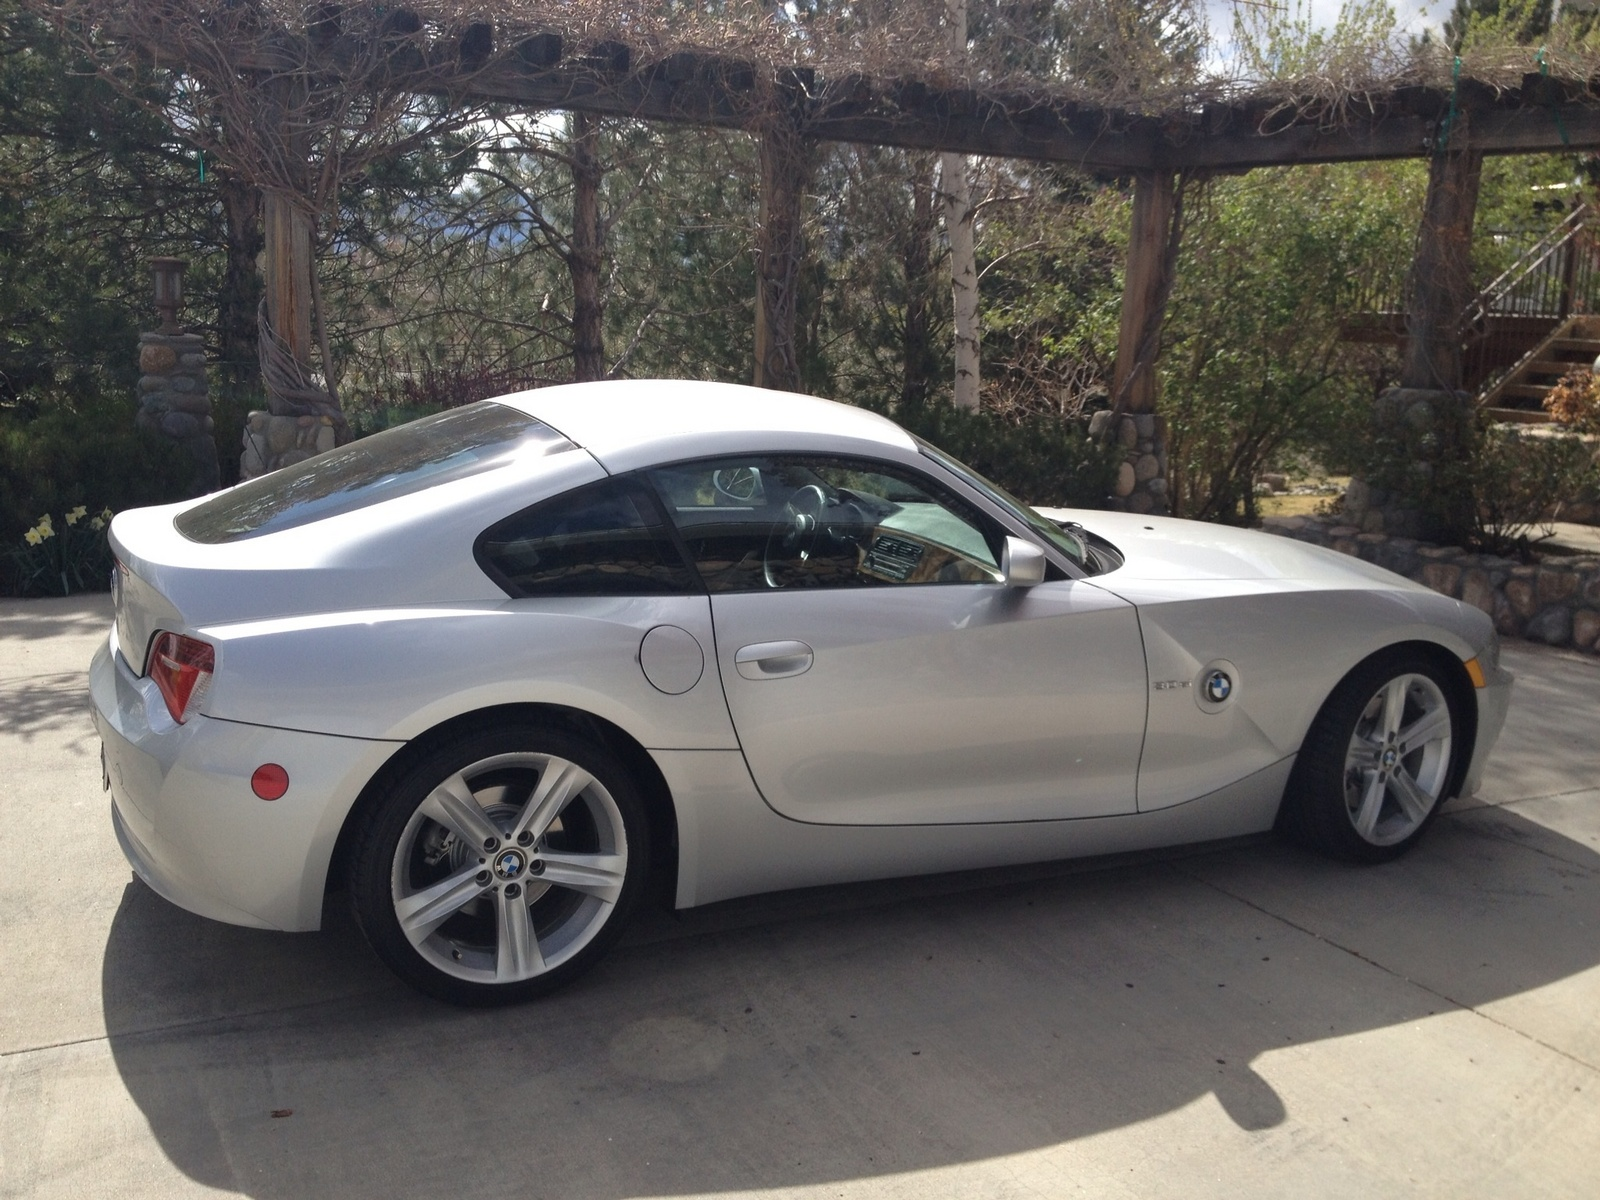 Picture of 2006 BMW Z4 Coupe 3.0si, exterior